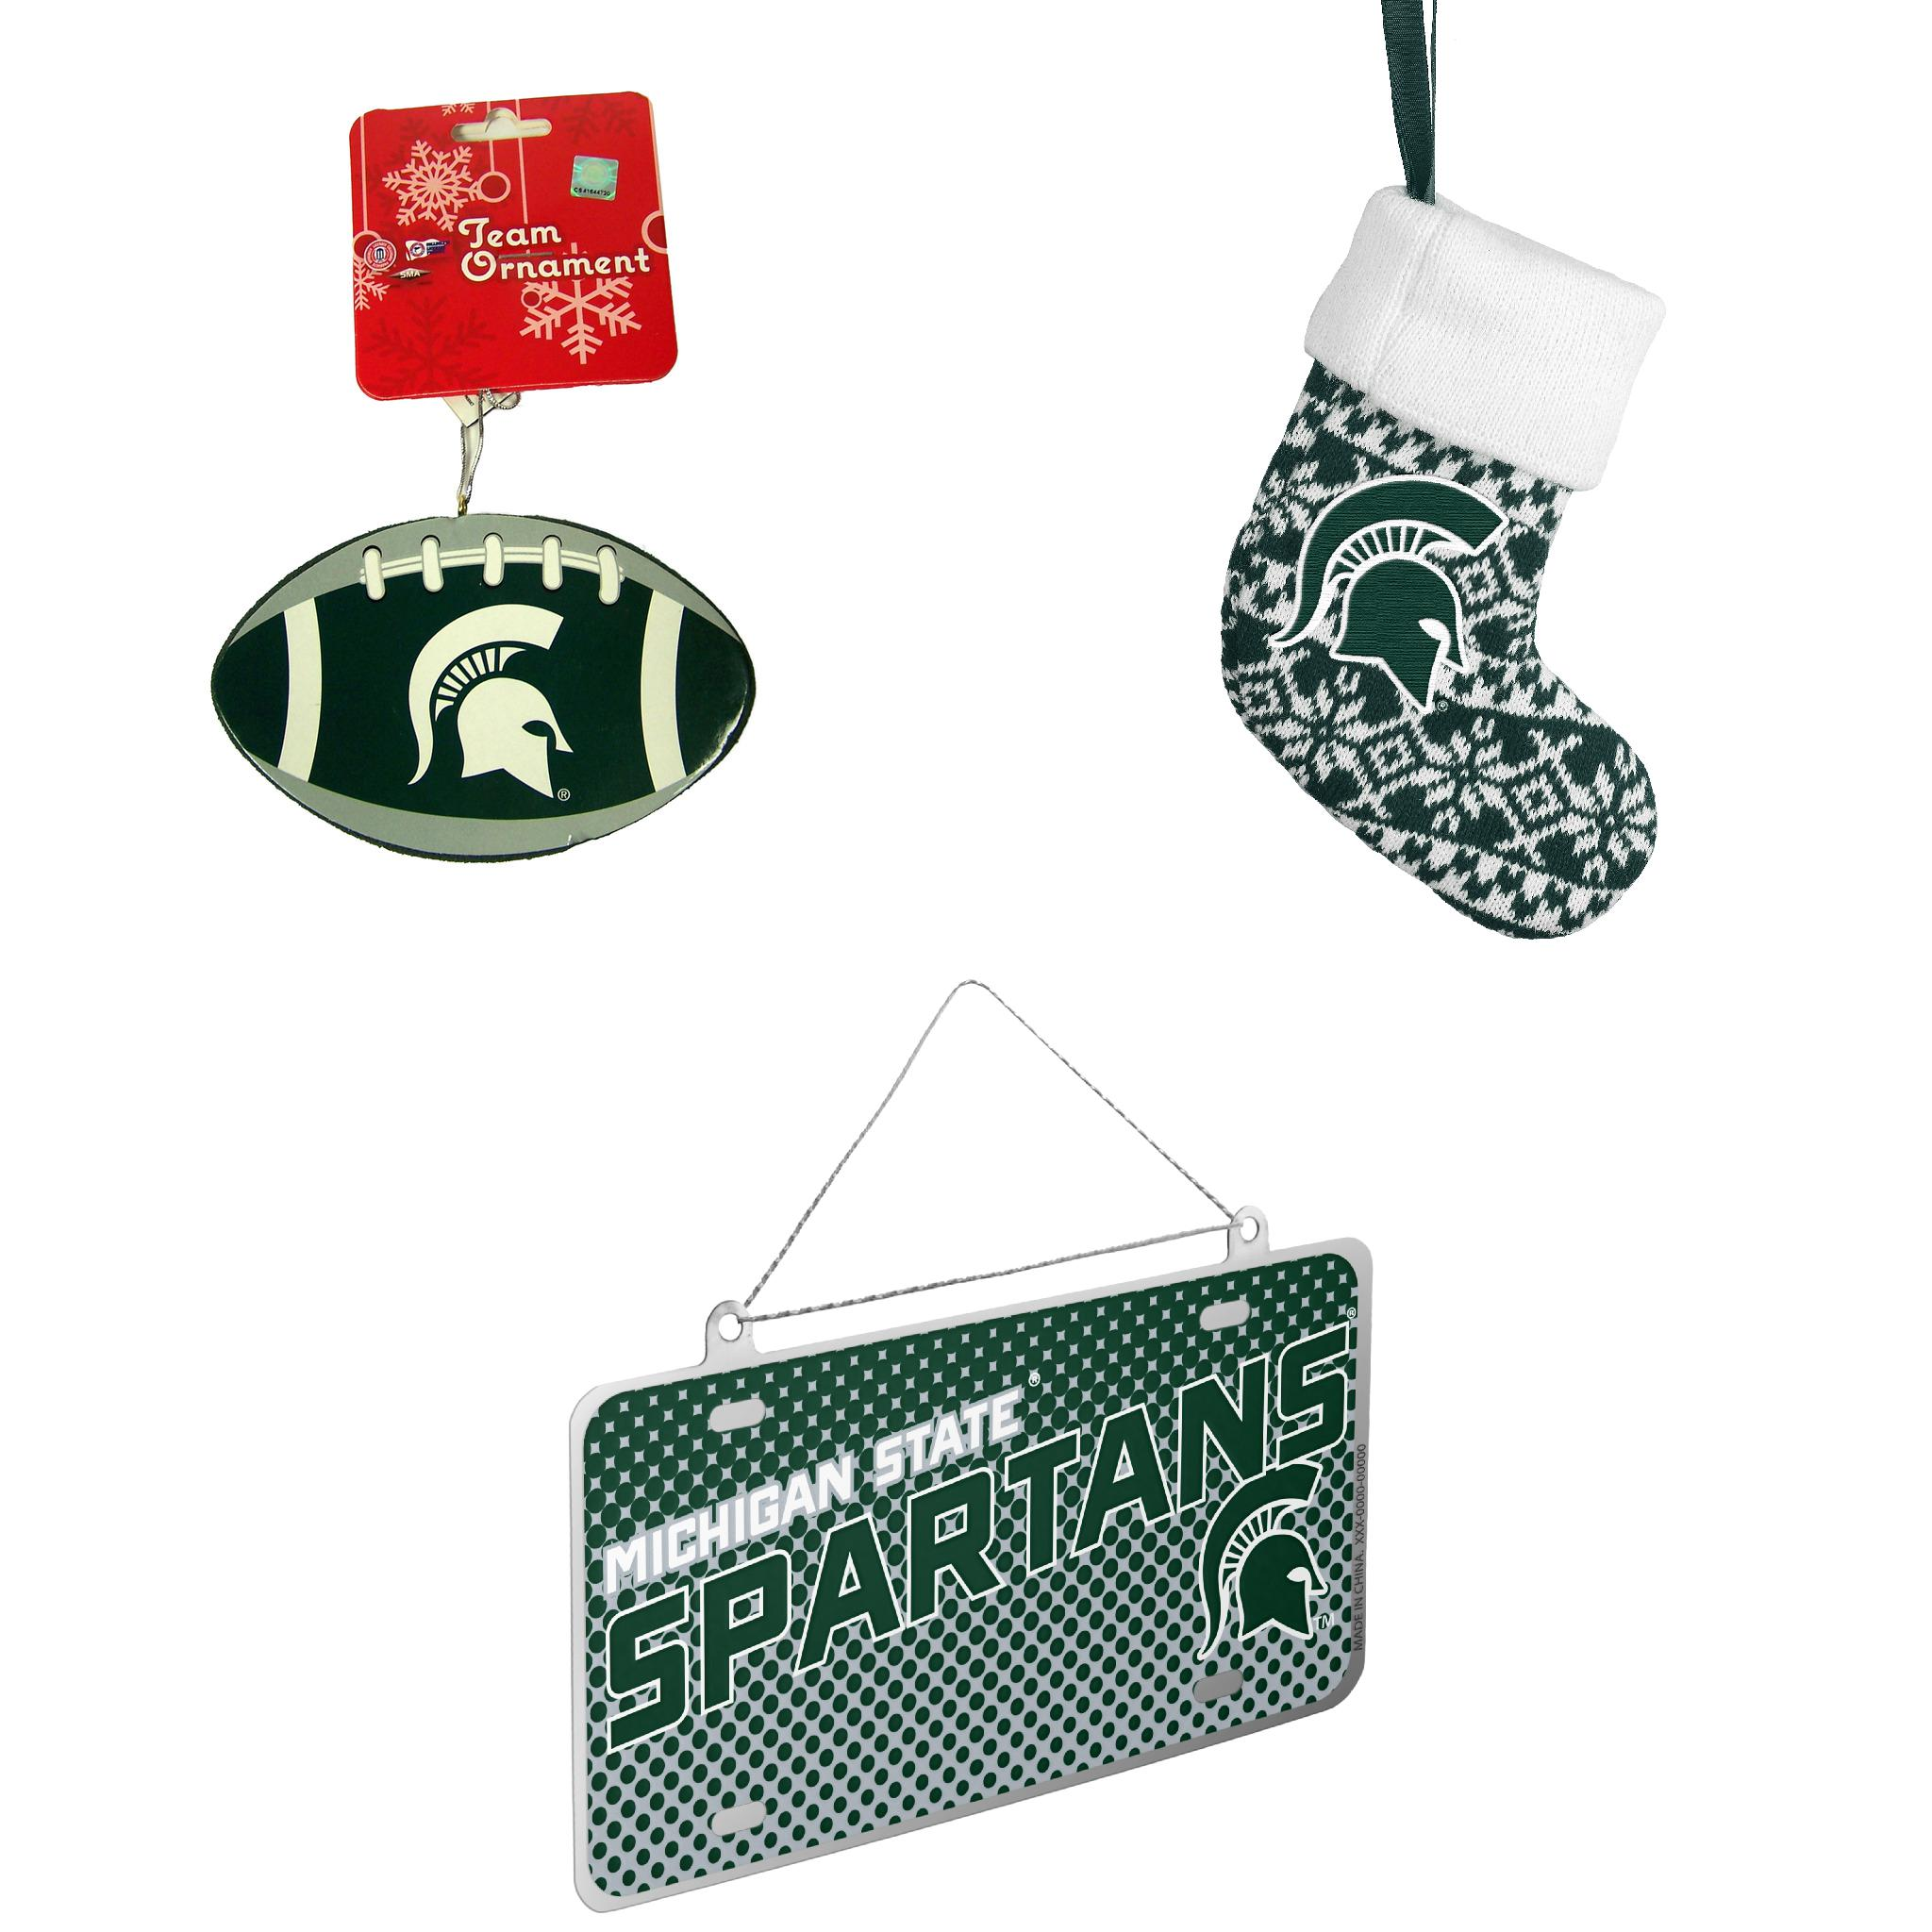 NCAA Michigan State Spartans Foam Christmas Ball Ornament ORNAMENT STOCKING KNIT Metal License Plate Bundle 3 Pack By Forever Collectibles